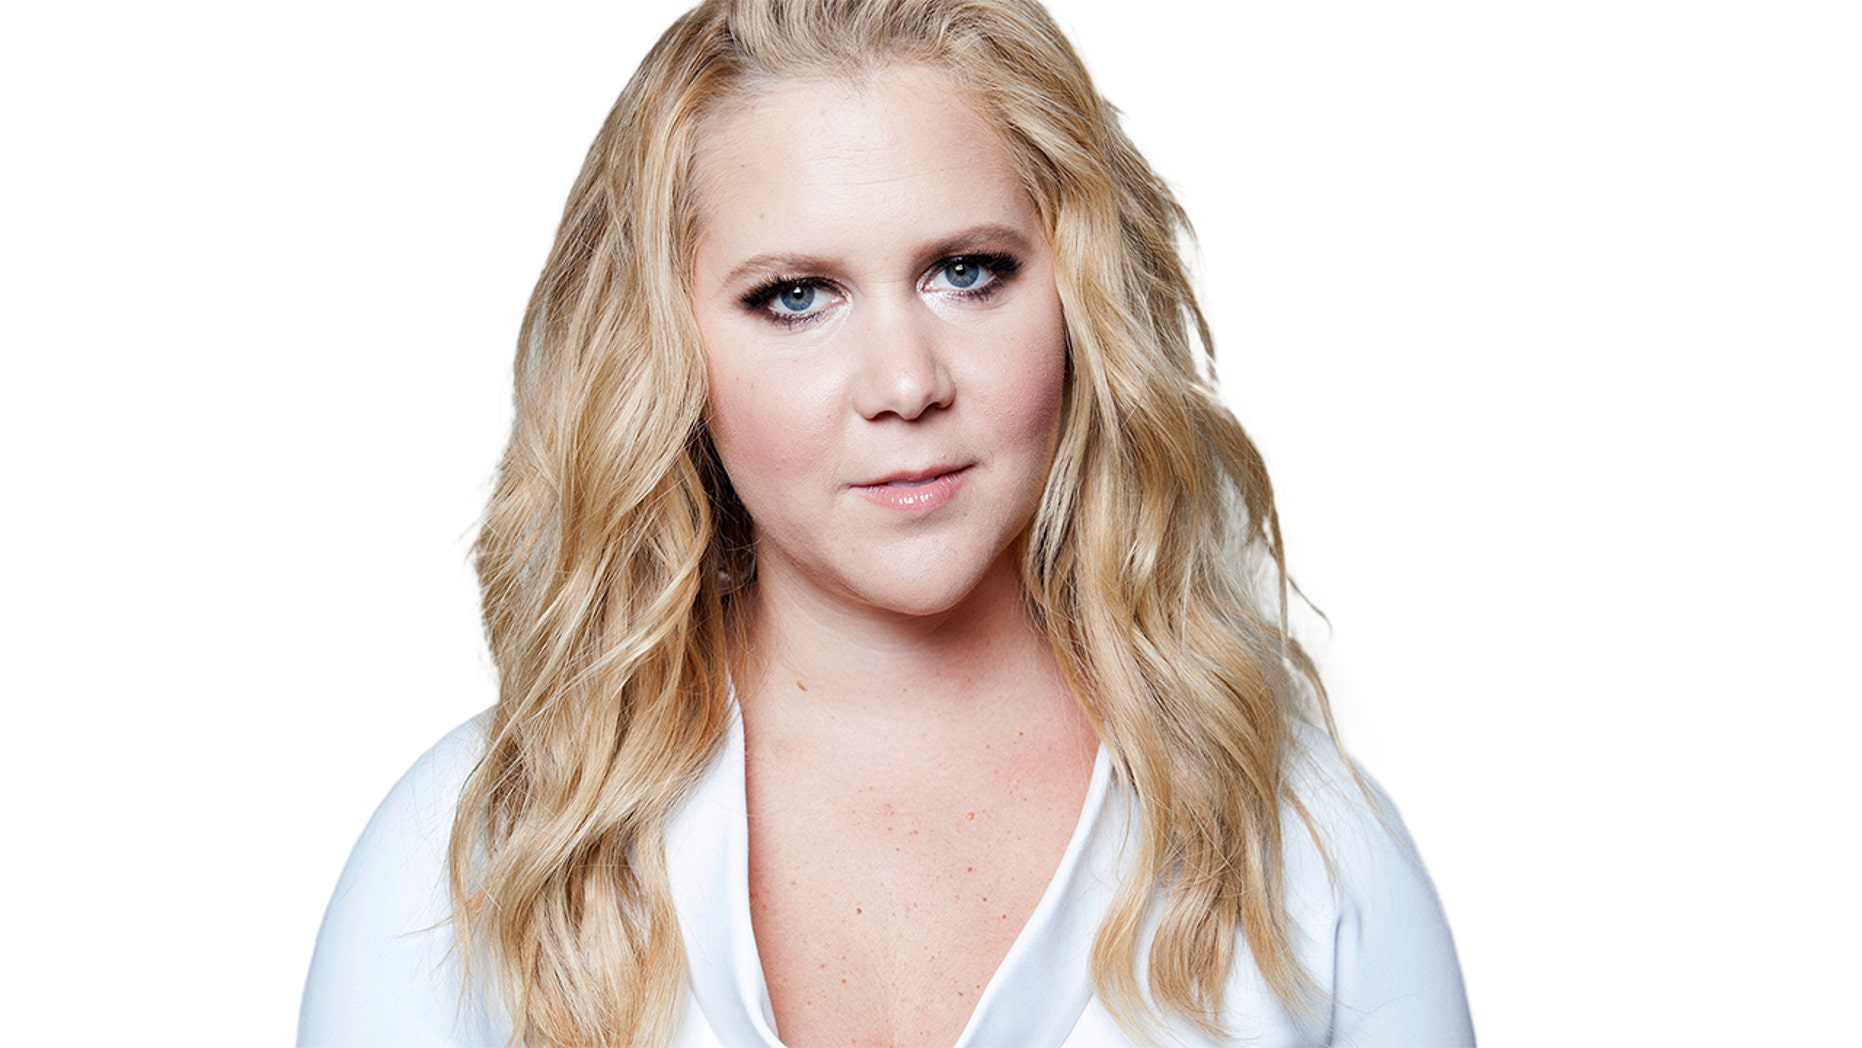 Amy Schumer denied rumors that she's expecting.